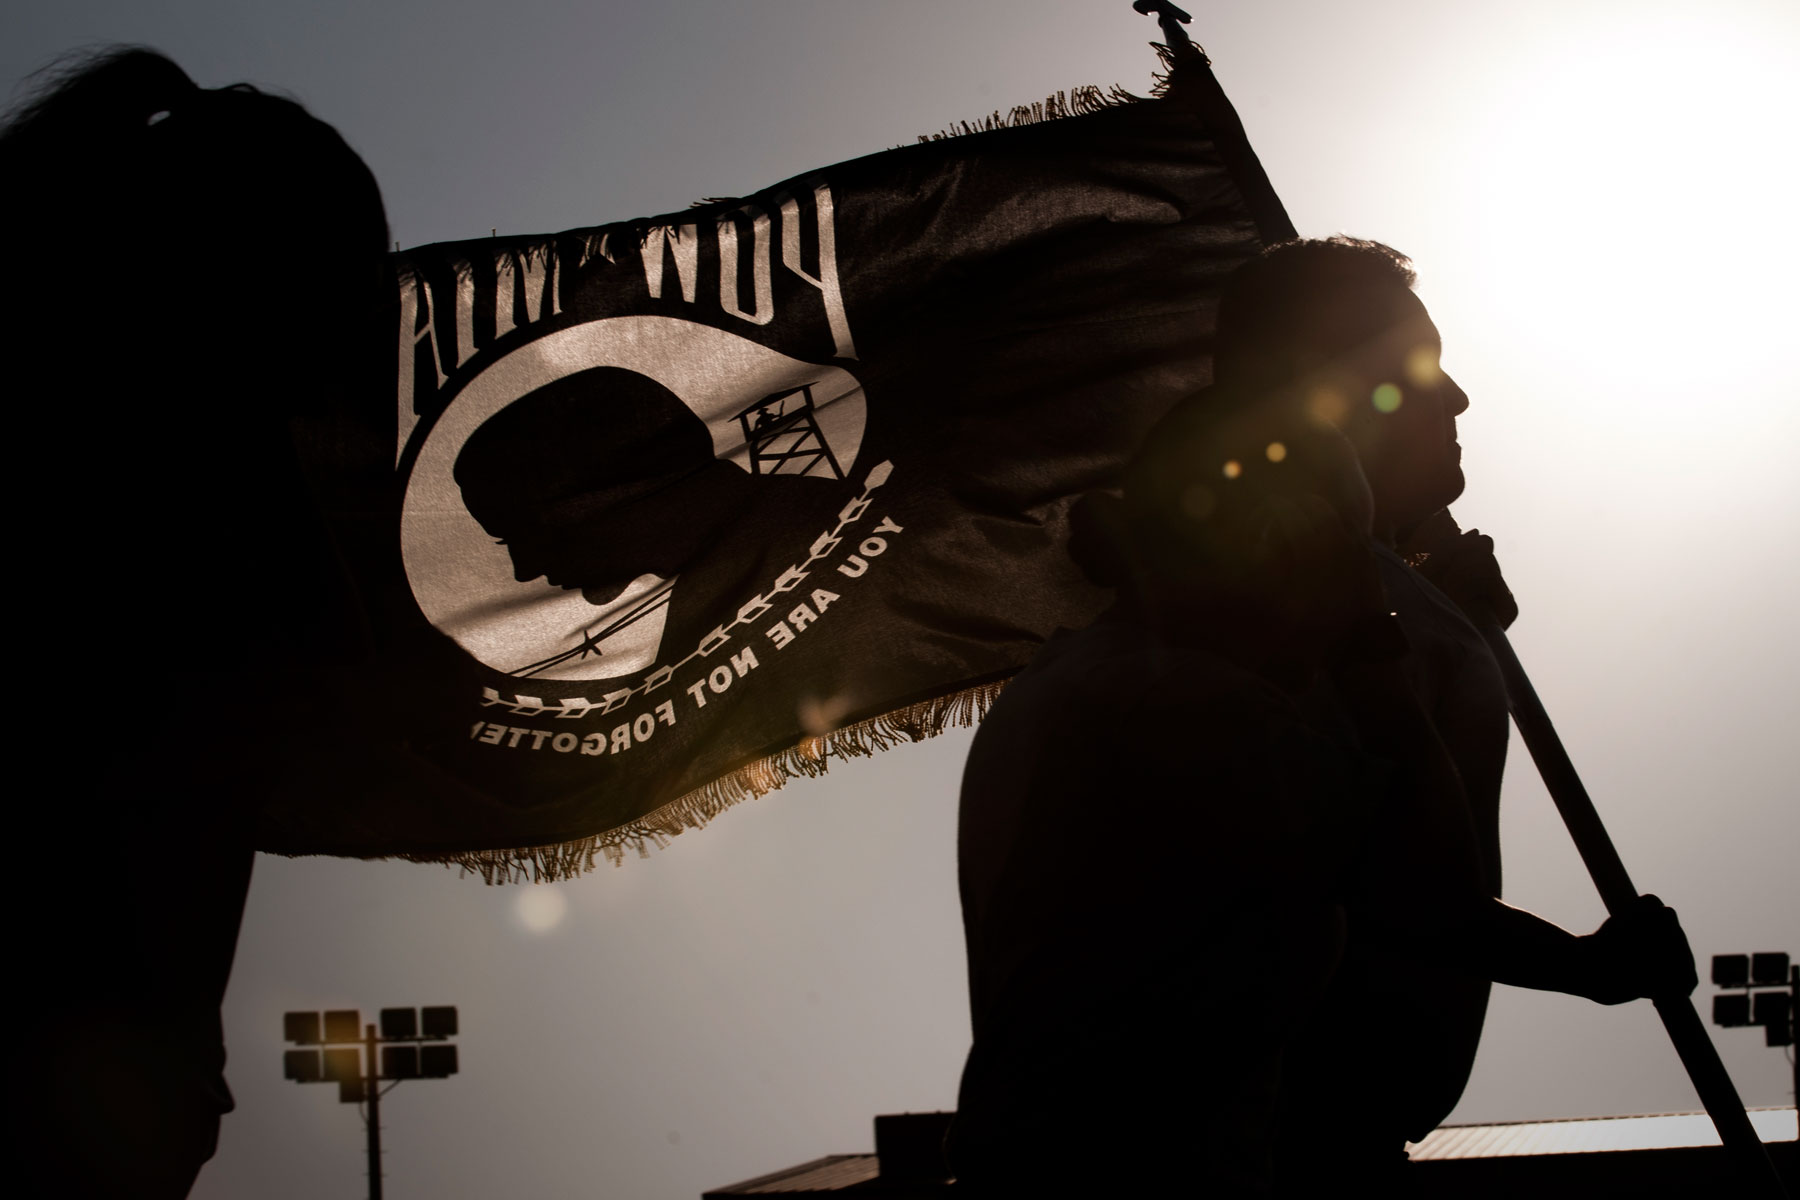 U.S. Air Force Airmen run with the Prisoner of War and Missing in Action flag during the POW/MIA Recognition Day at Kunsan Air Base, Republic of Korea, Sept. 14, 2017. (U.S. Air Force photo by Staff Sgt. Victoria H. Taylor)